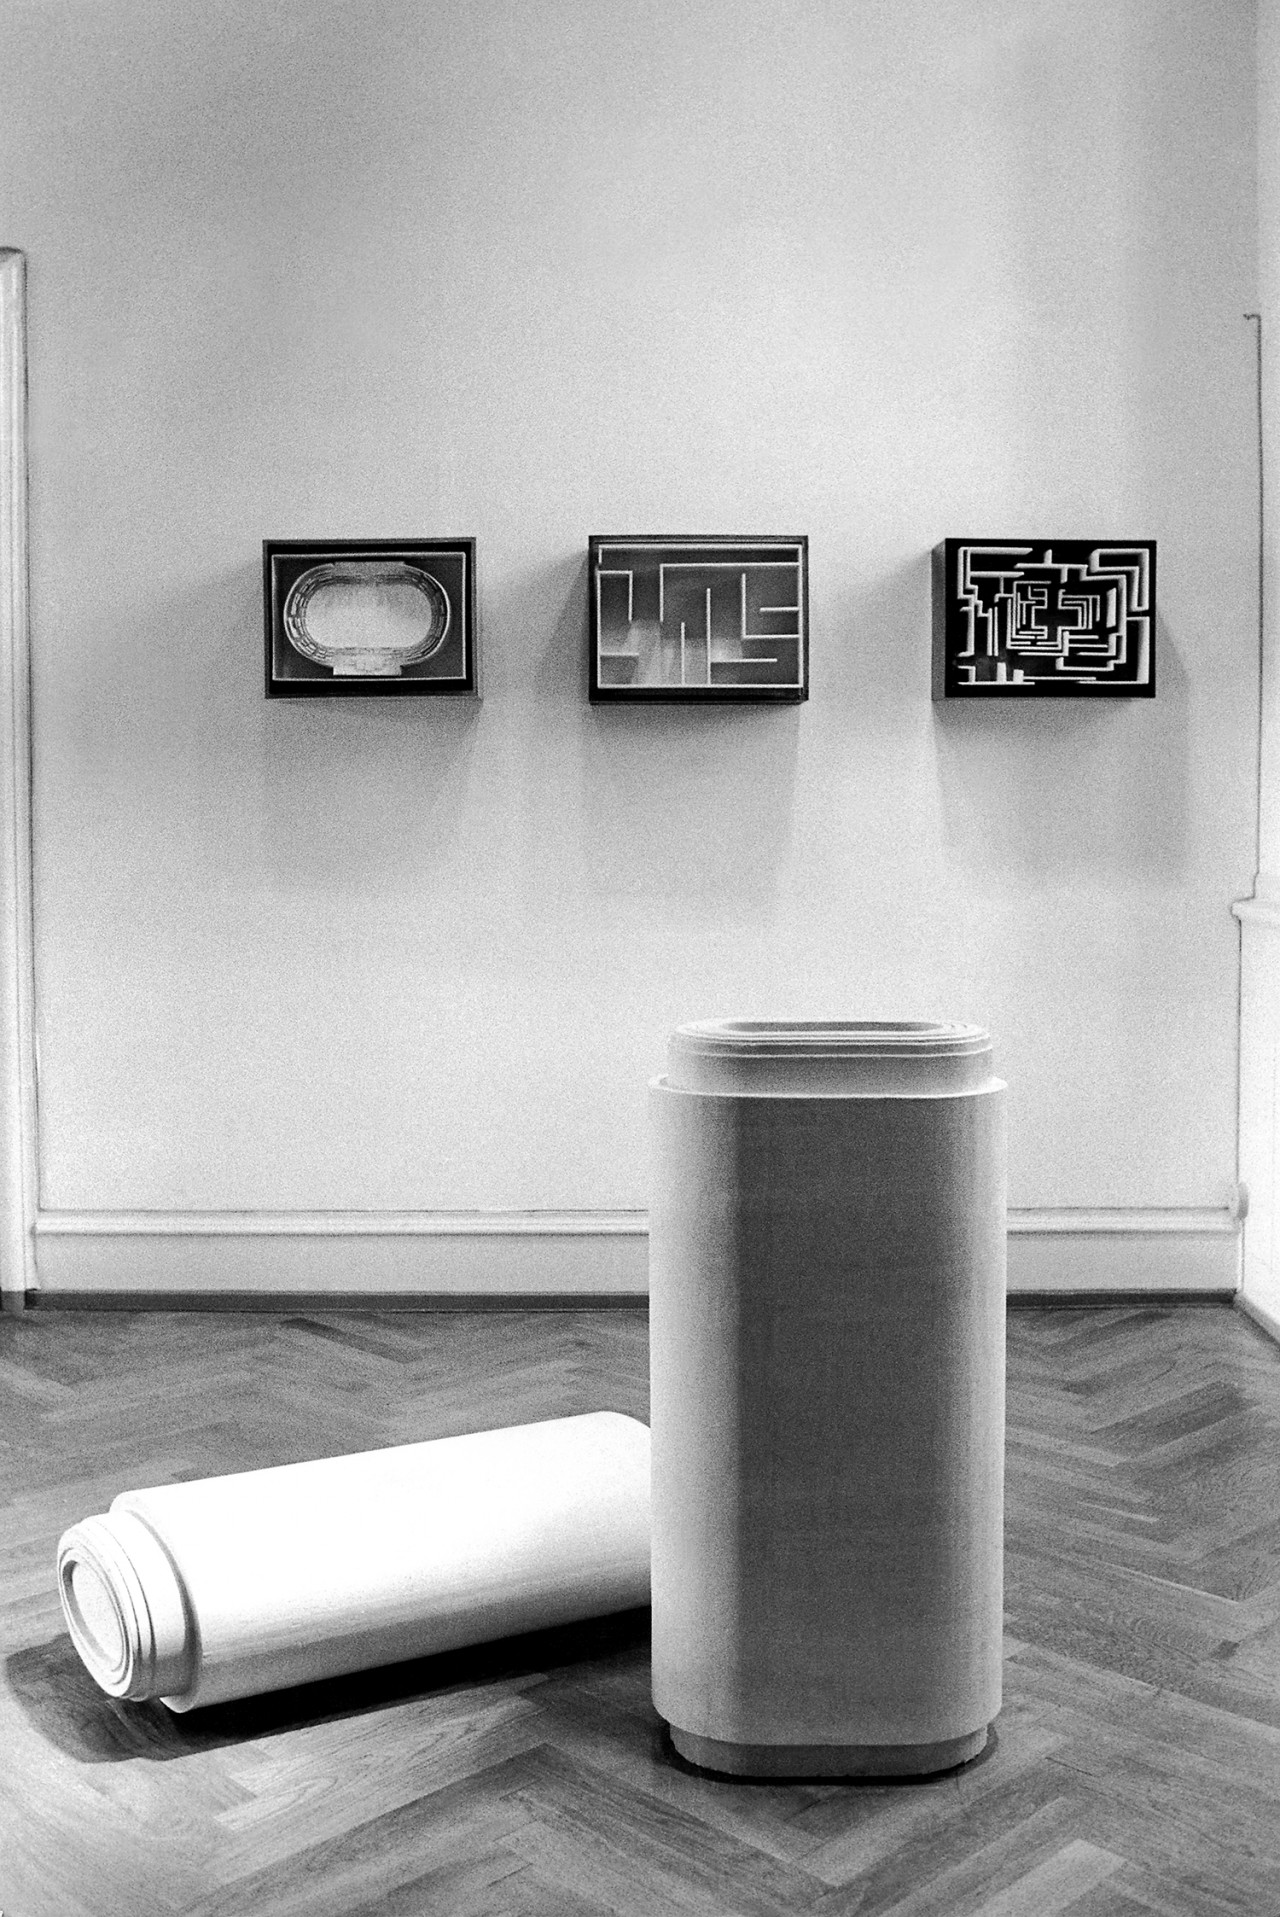 Kirstine Vaaben <i>Museum of Contemporary Art,</i> Roskilde 1993